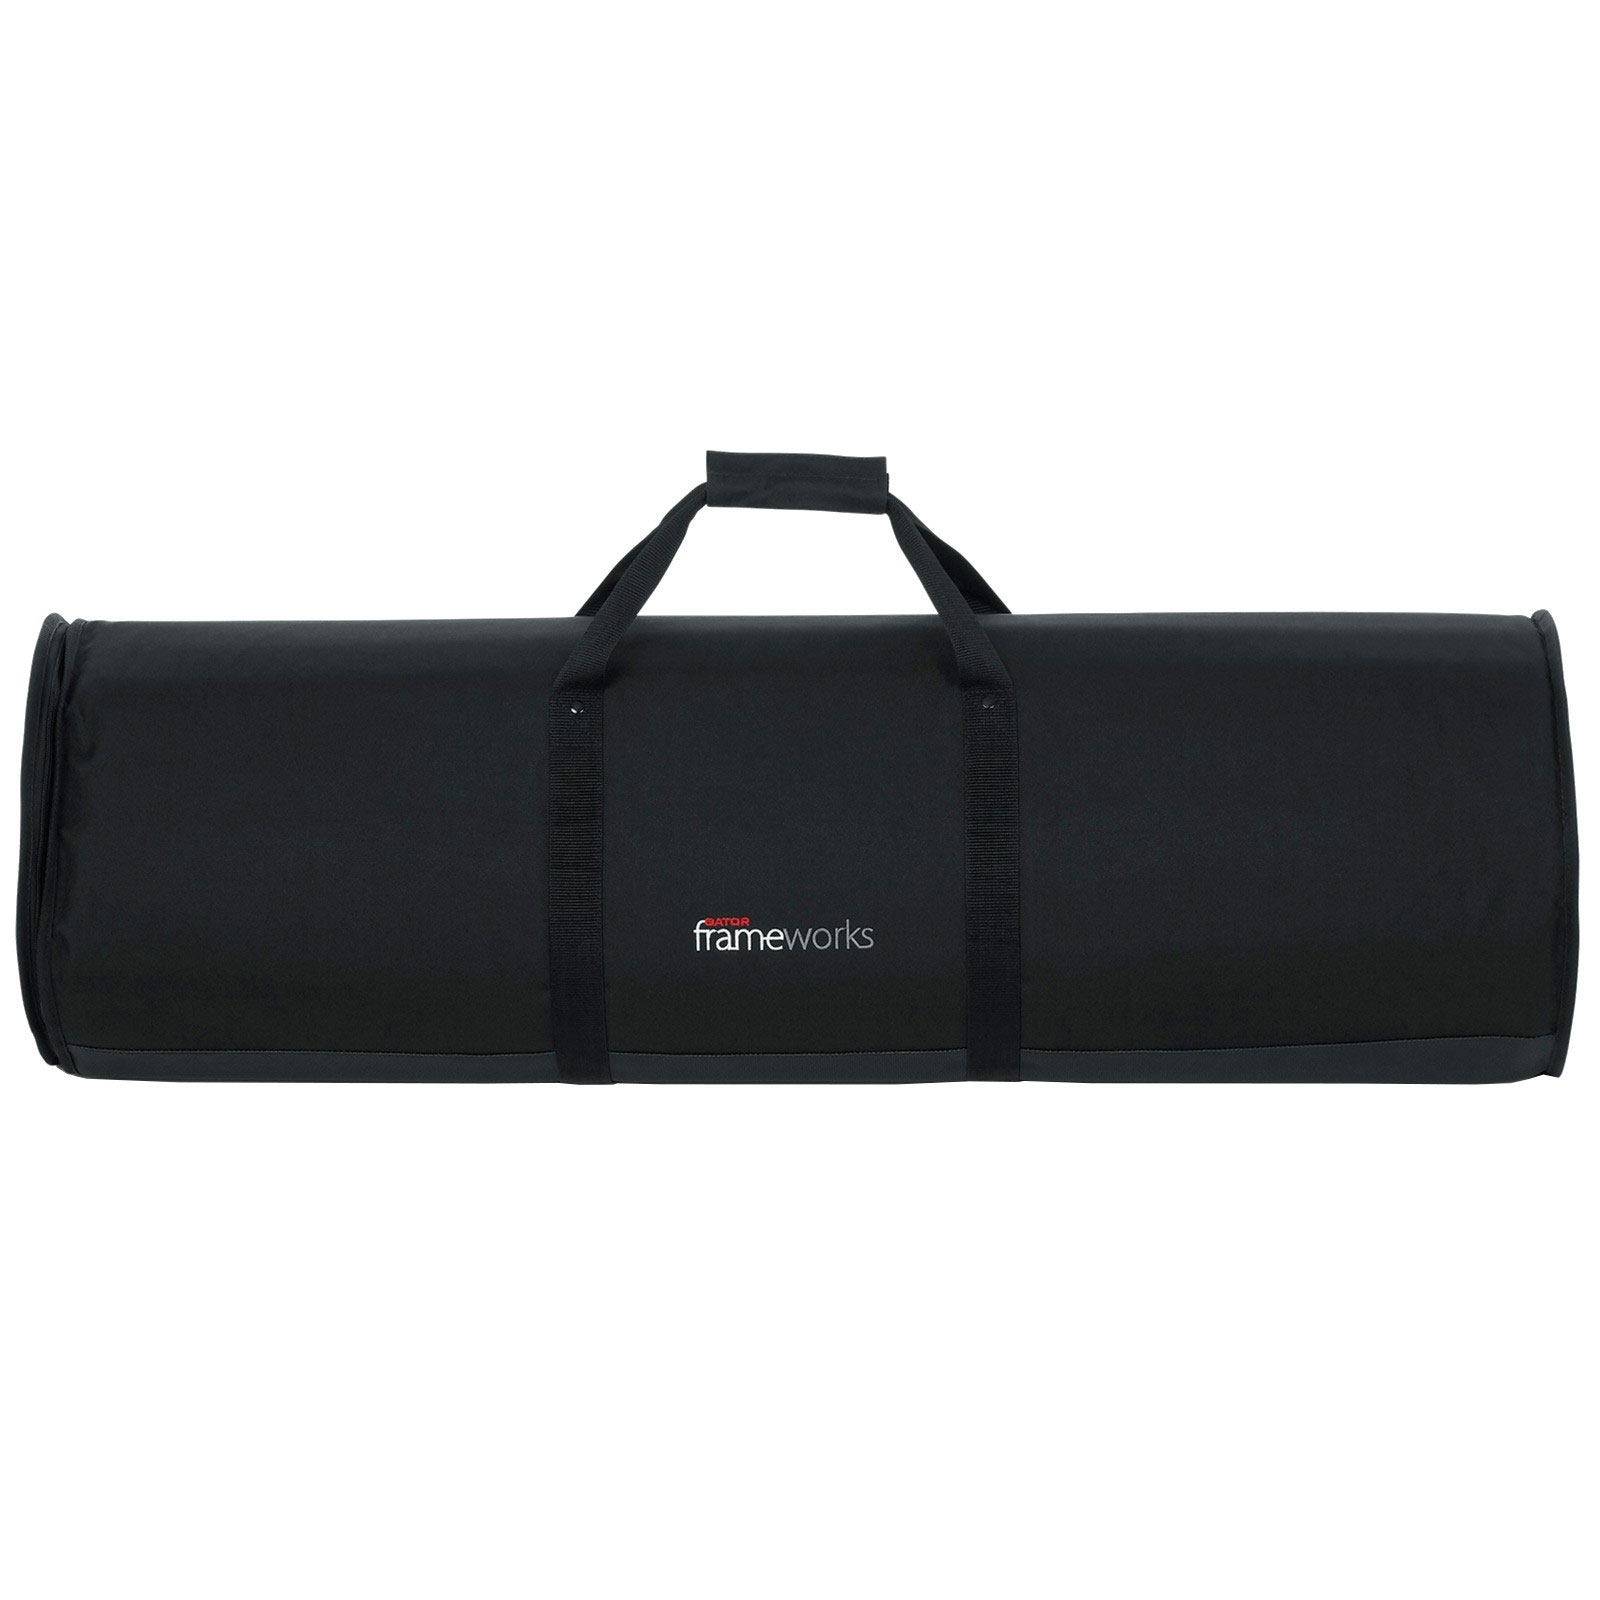 Gator Cases Frameworks Deluxe Carry Bag for Up to 6 Tripod-Style Microphone Stands